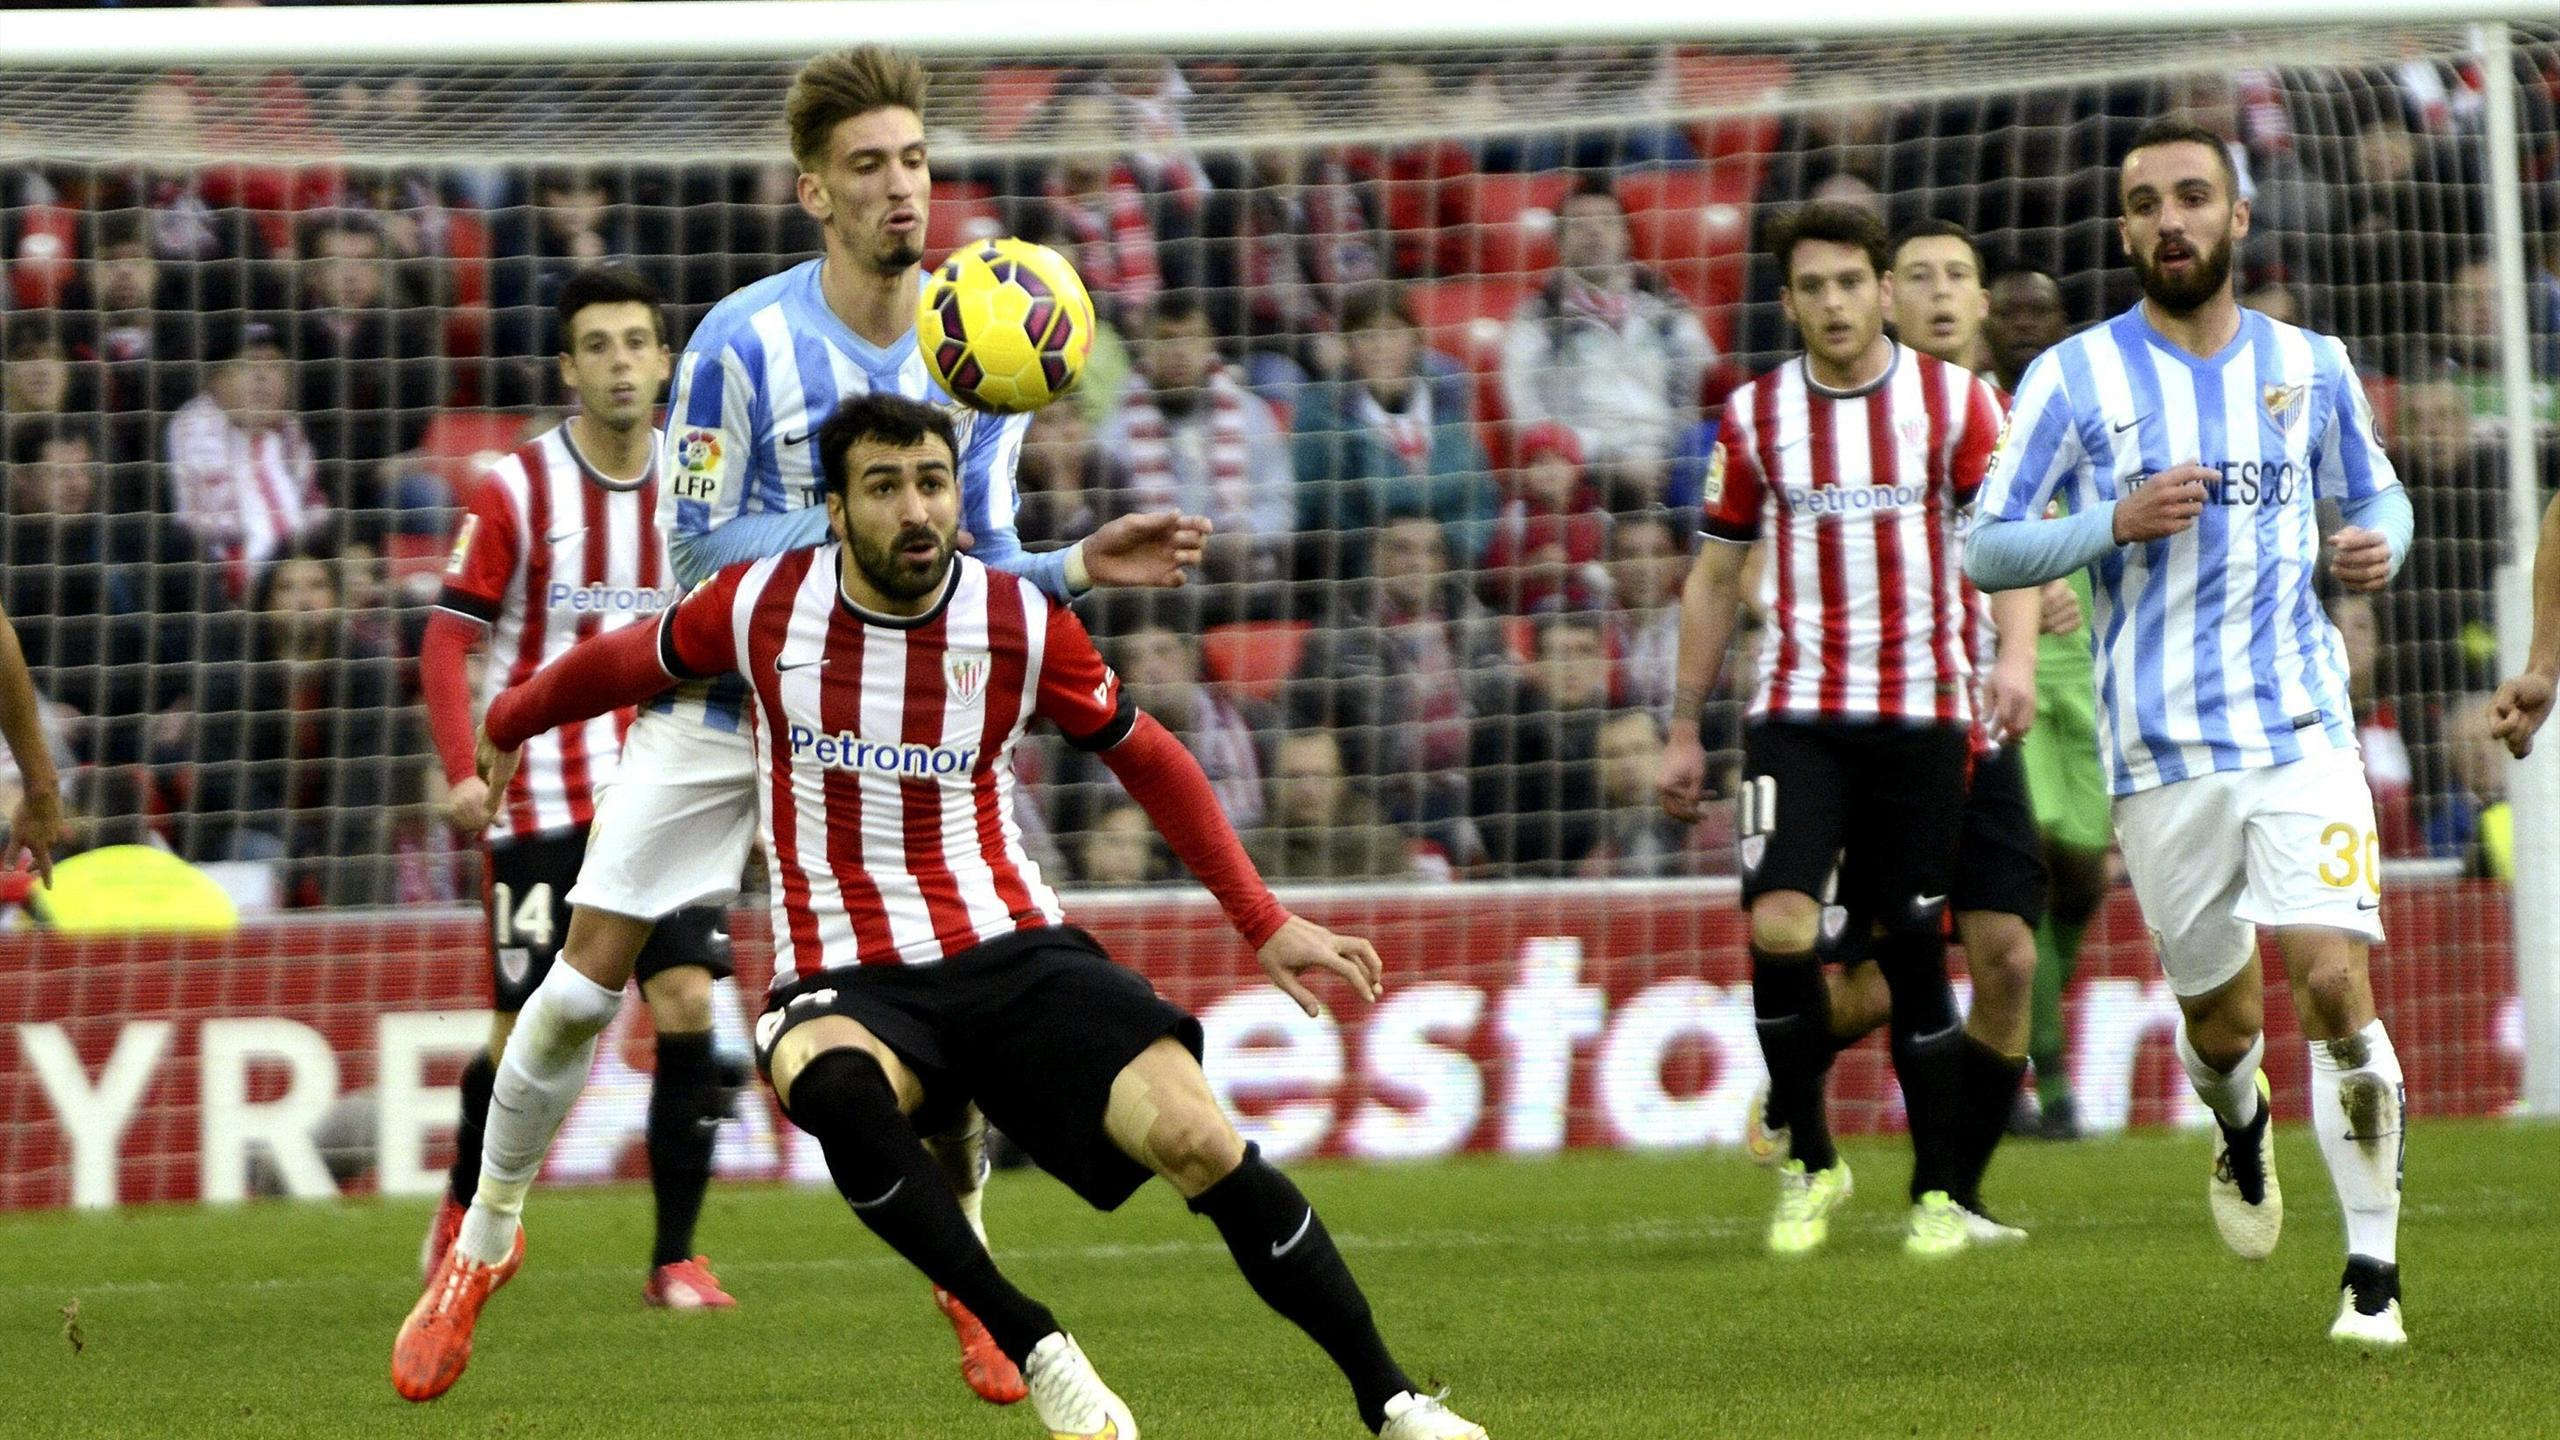 Video: Athletic Bilbao vs Malaga